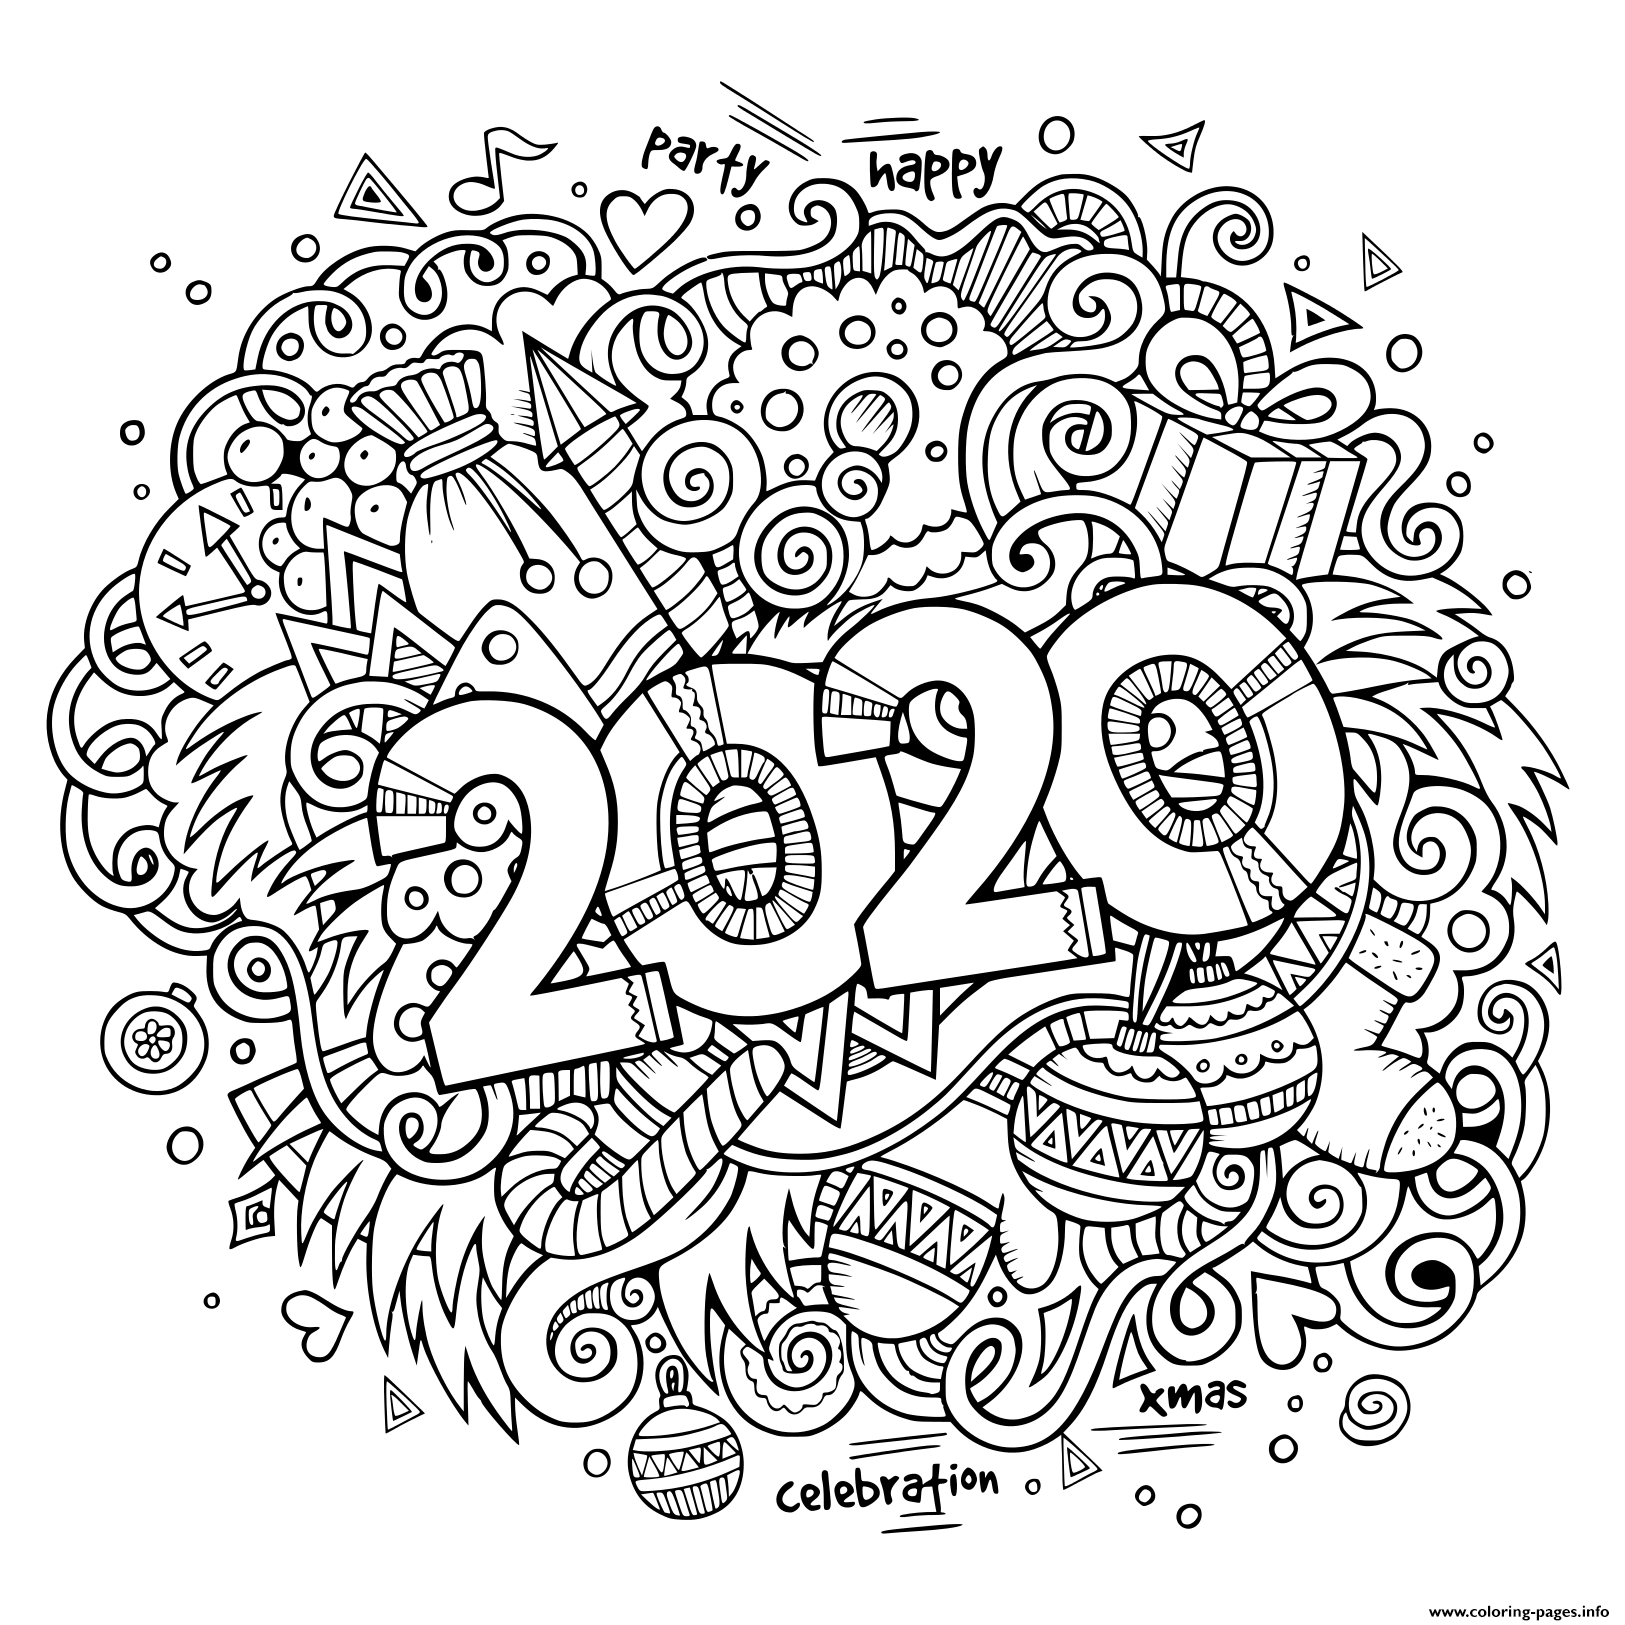 New Year Doodles Objects And Elements Poster Design